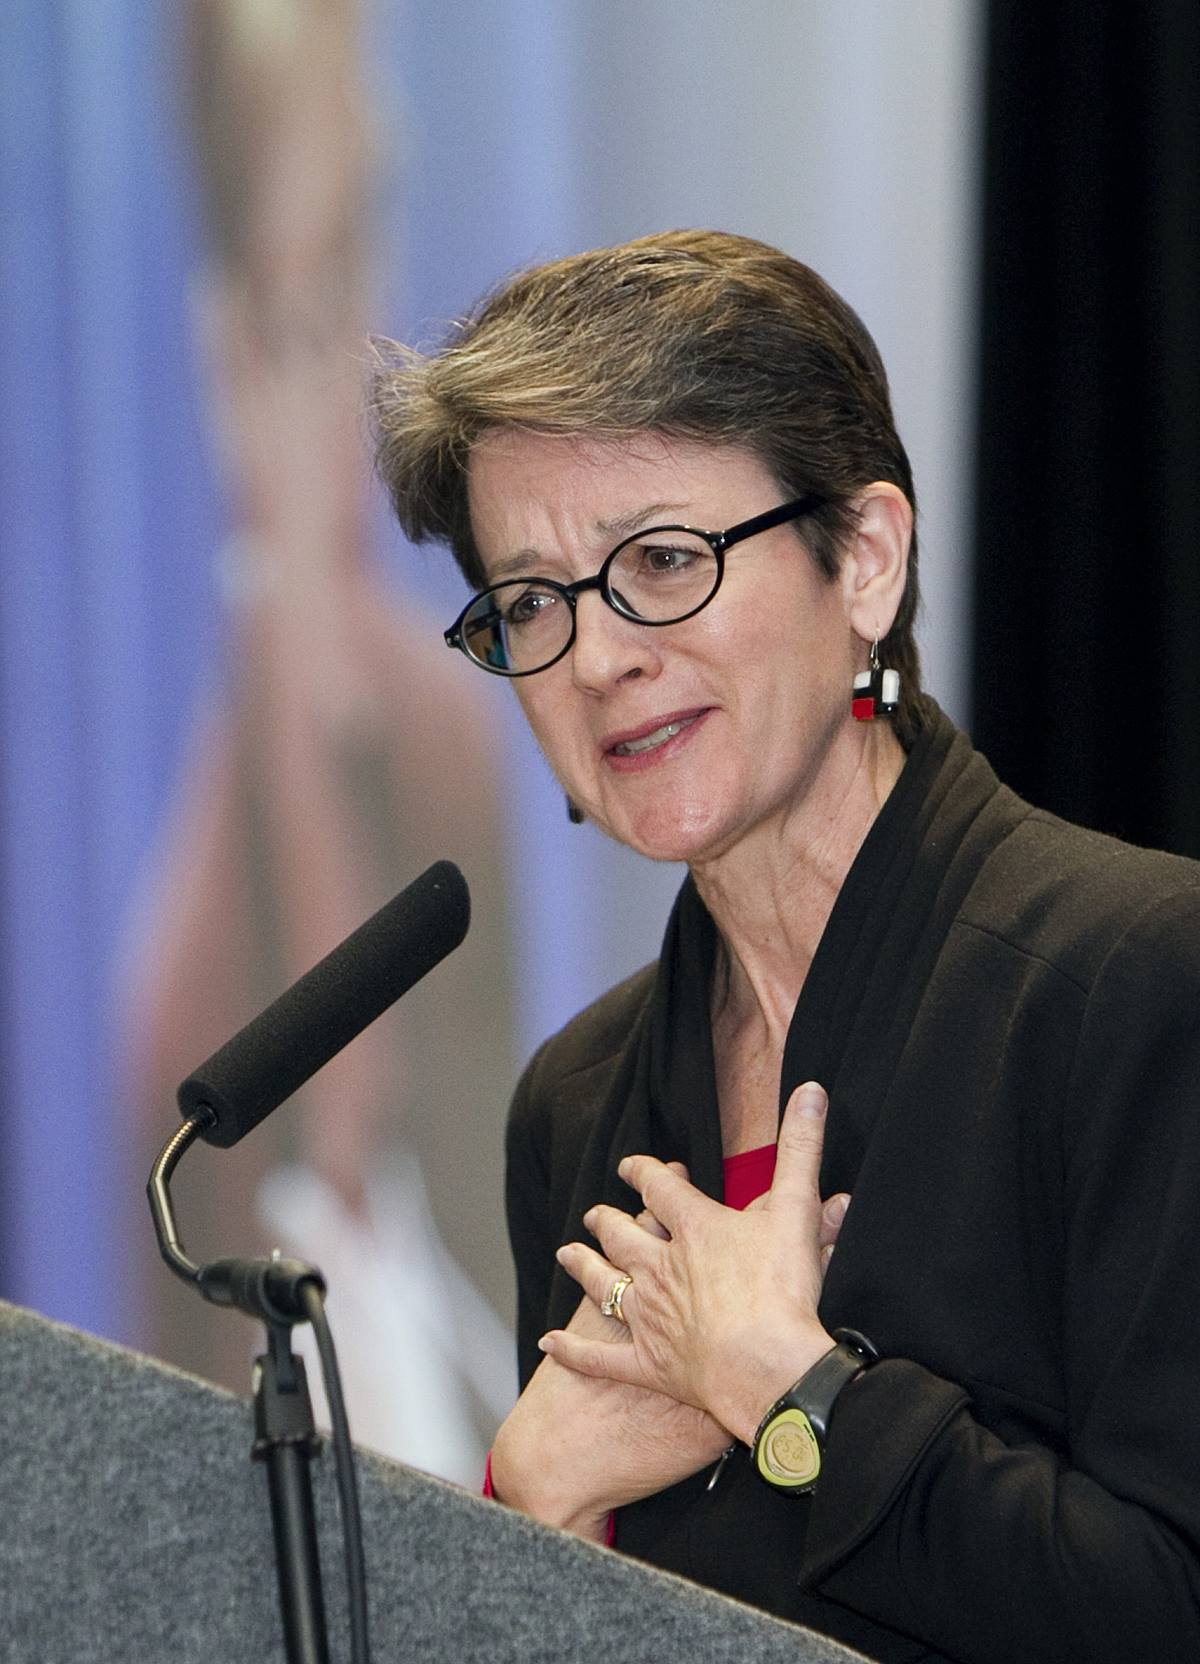 """United Methodist Bishop Sally Dyck speaks about the importance of """"holy conversation"""" about contentious issues facing The United Methodist Church during its pre-General Conference news briefing in January 2012 at the Tampa Convention Center in Florida. A UMNS photo by Mike DuBose."""